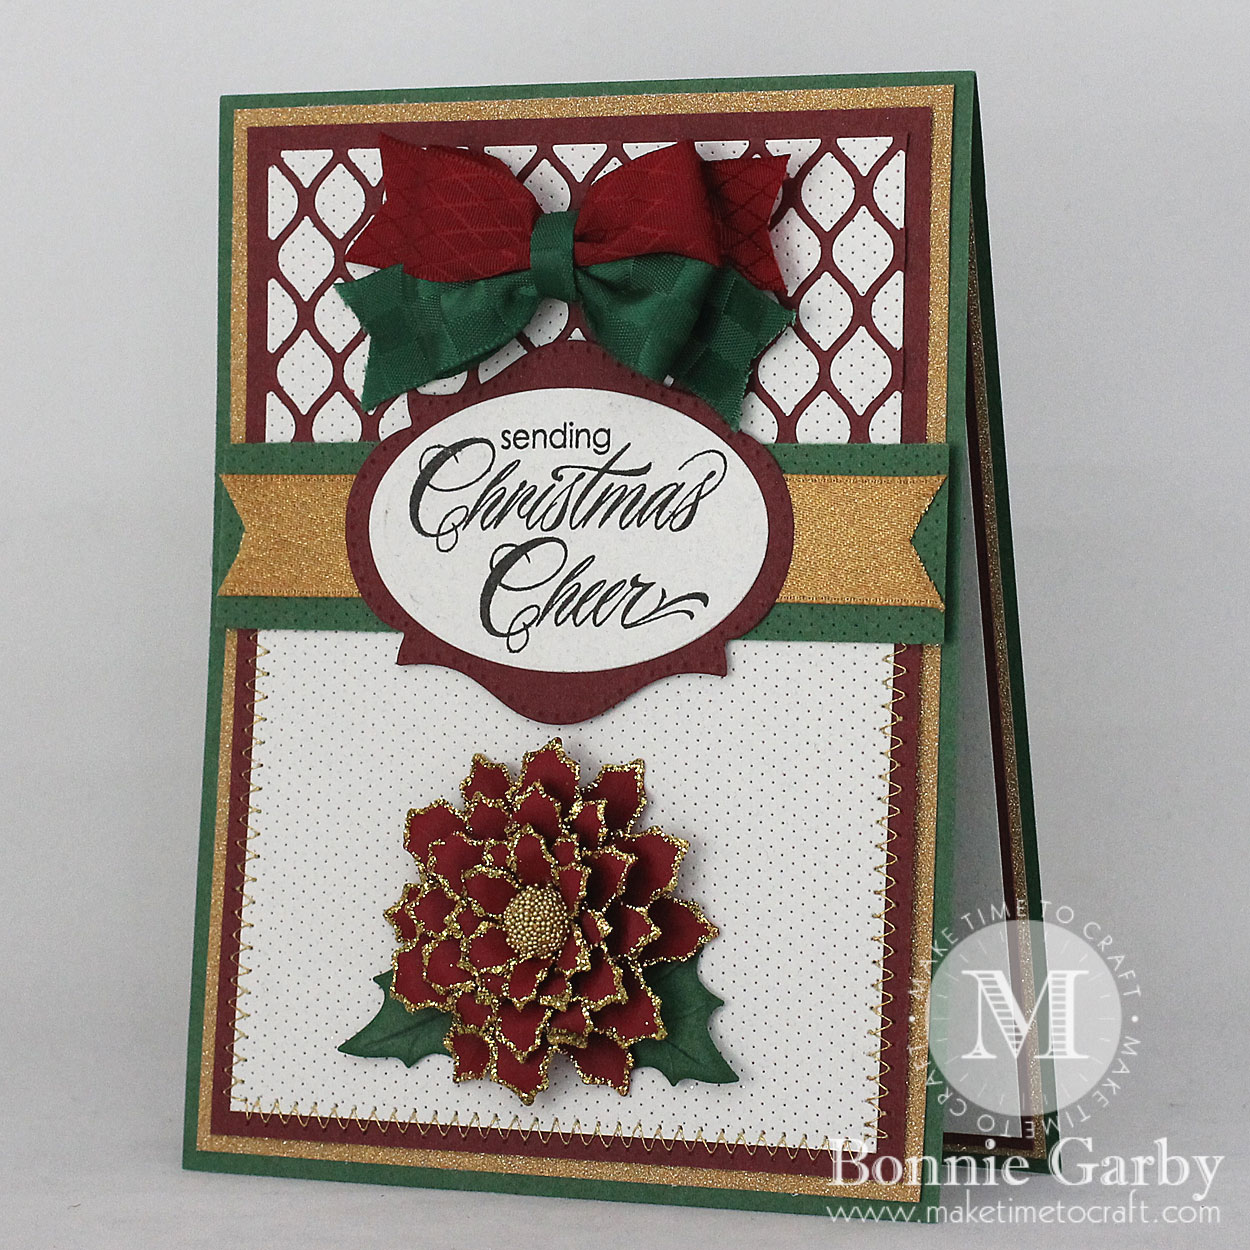 Sending Christmas Cheer Card